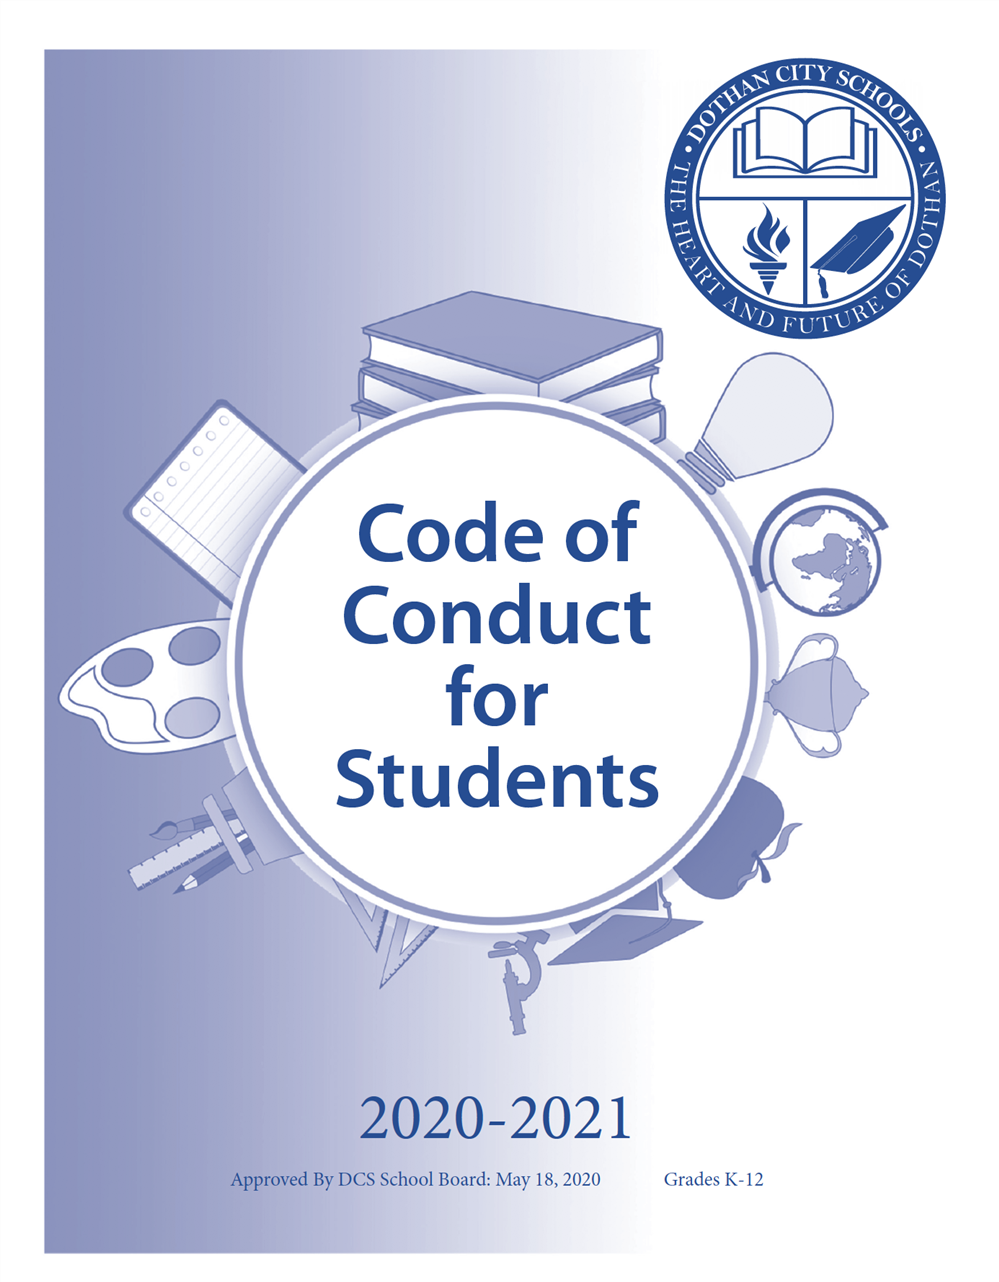 DCS Code of Conduct Book Cover